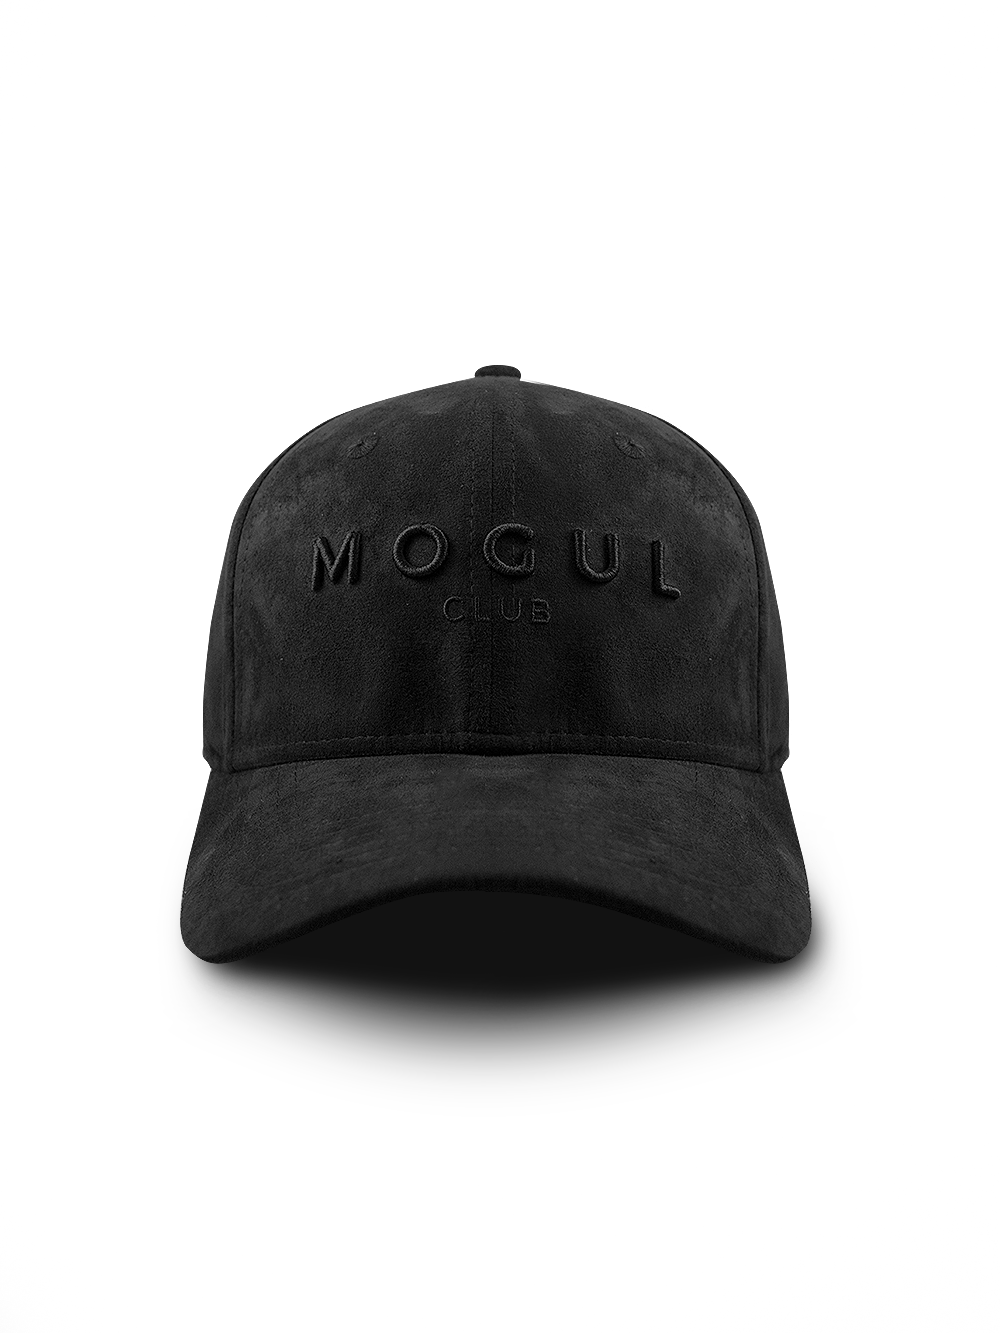 Noir+ Suede Baseball Cap All Black - Mogul Club ab14407f427